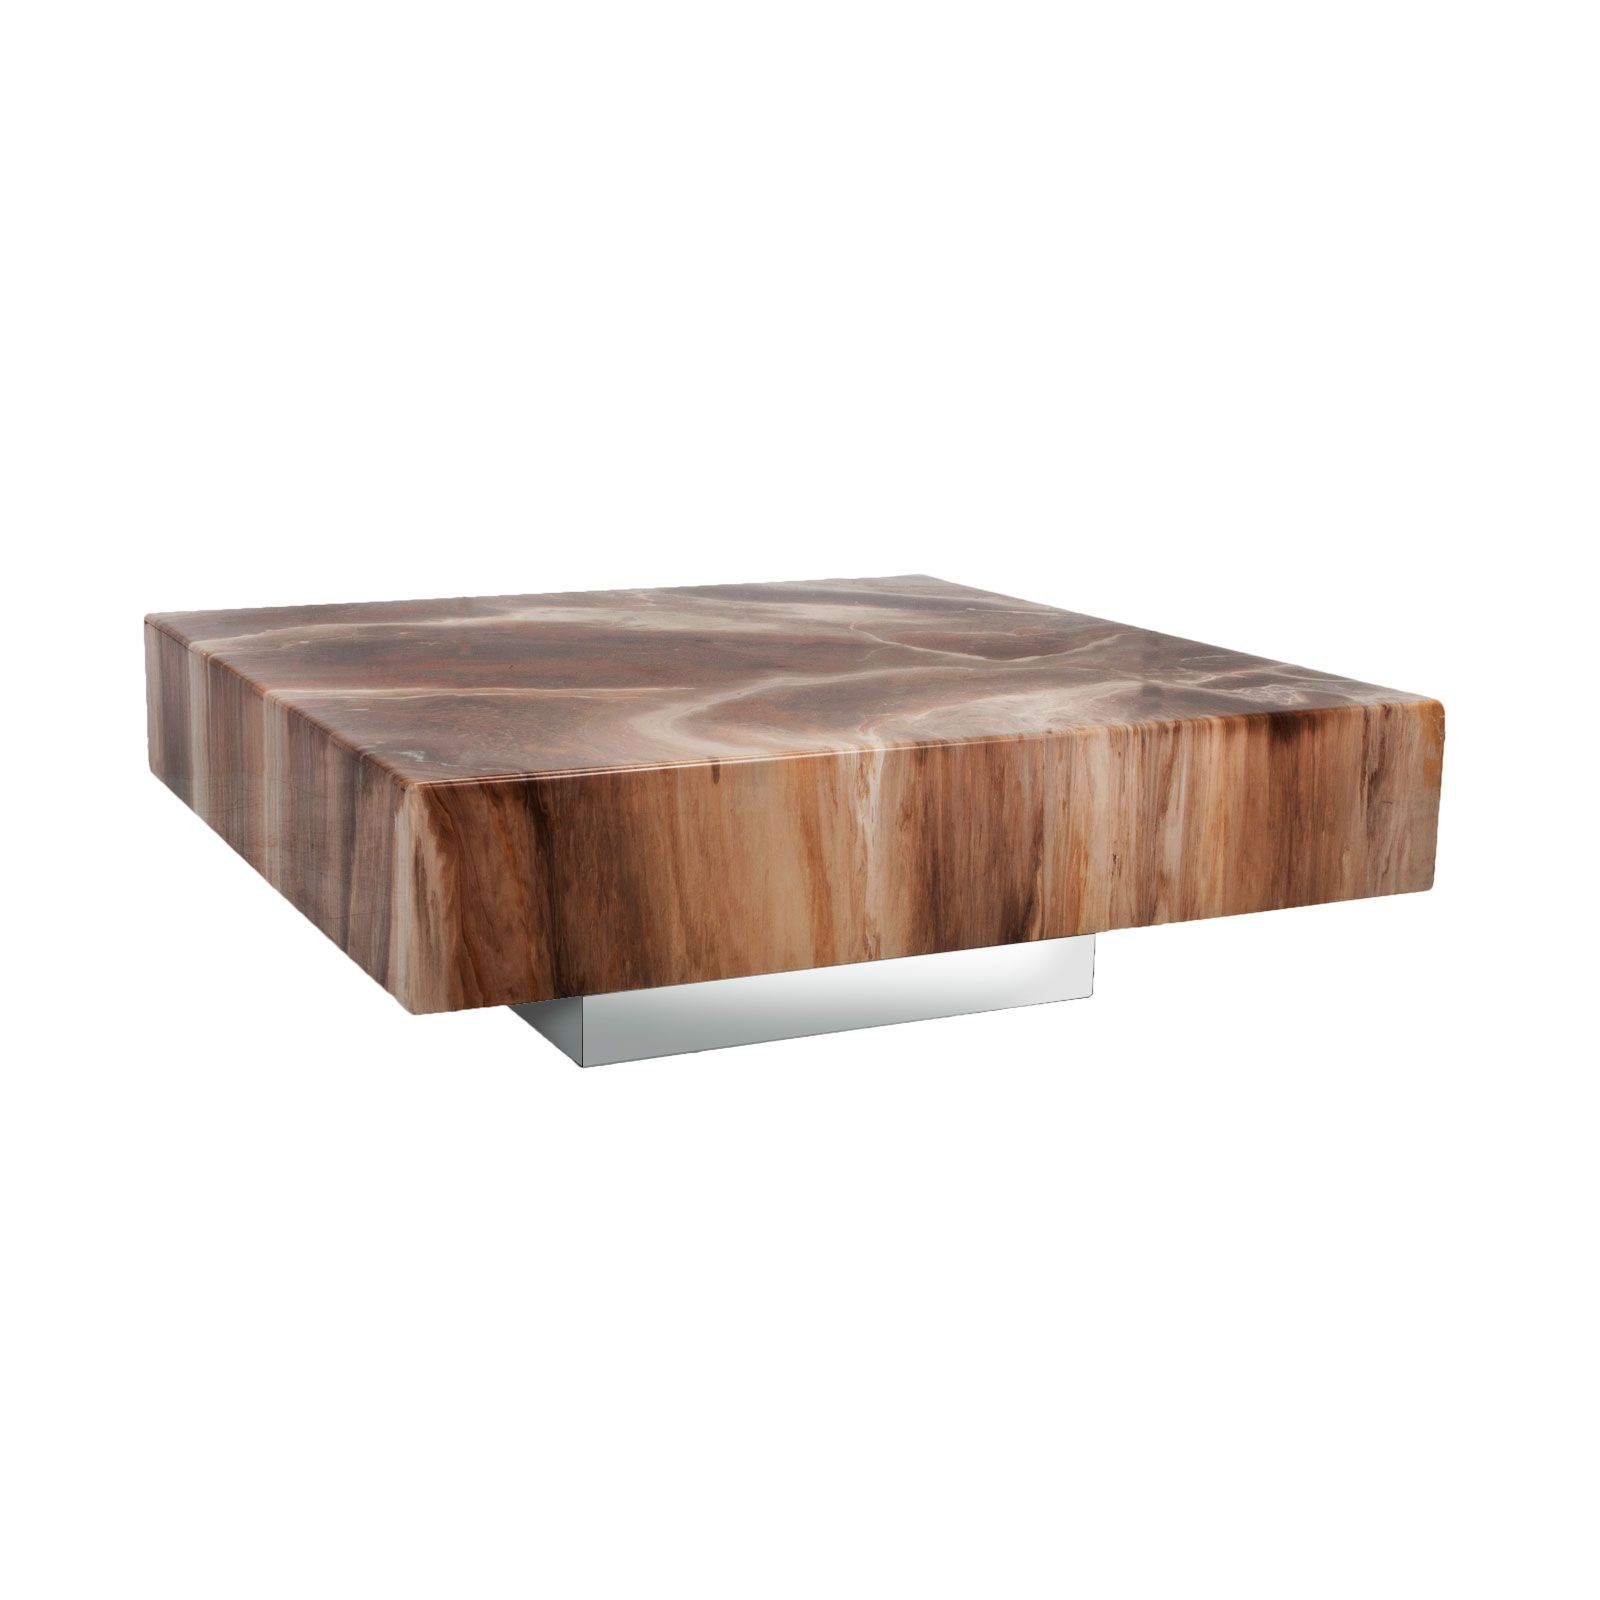 Beau Milo Baughman Coffee Table (Faux Marble)   FormDecor